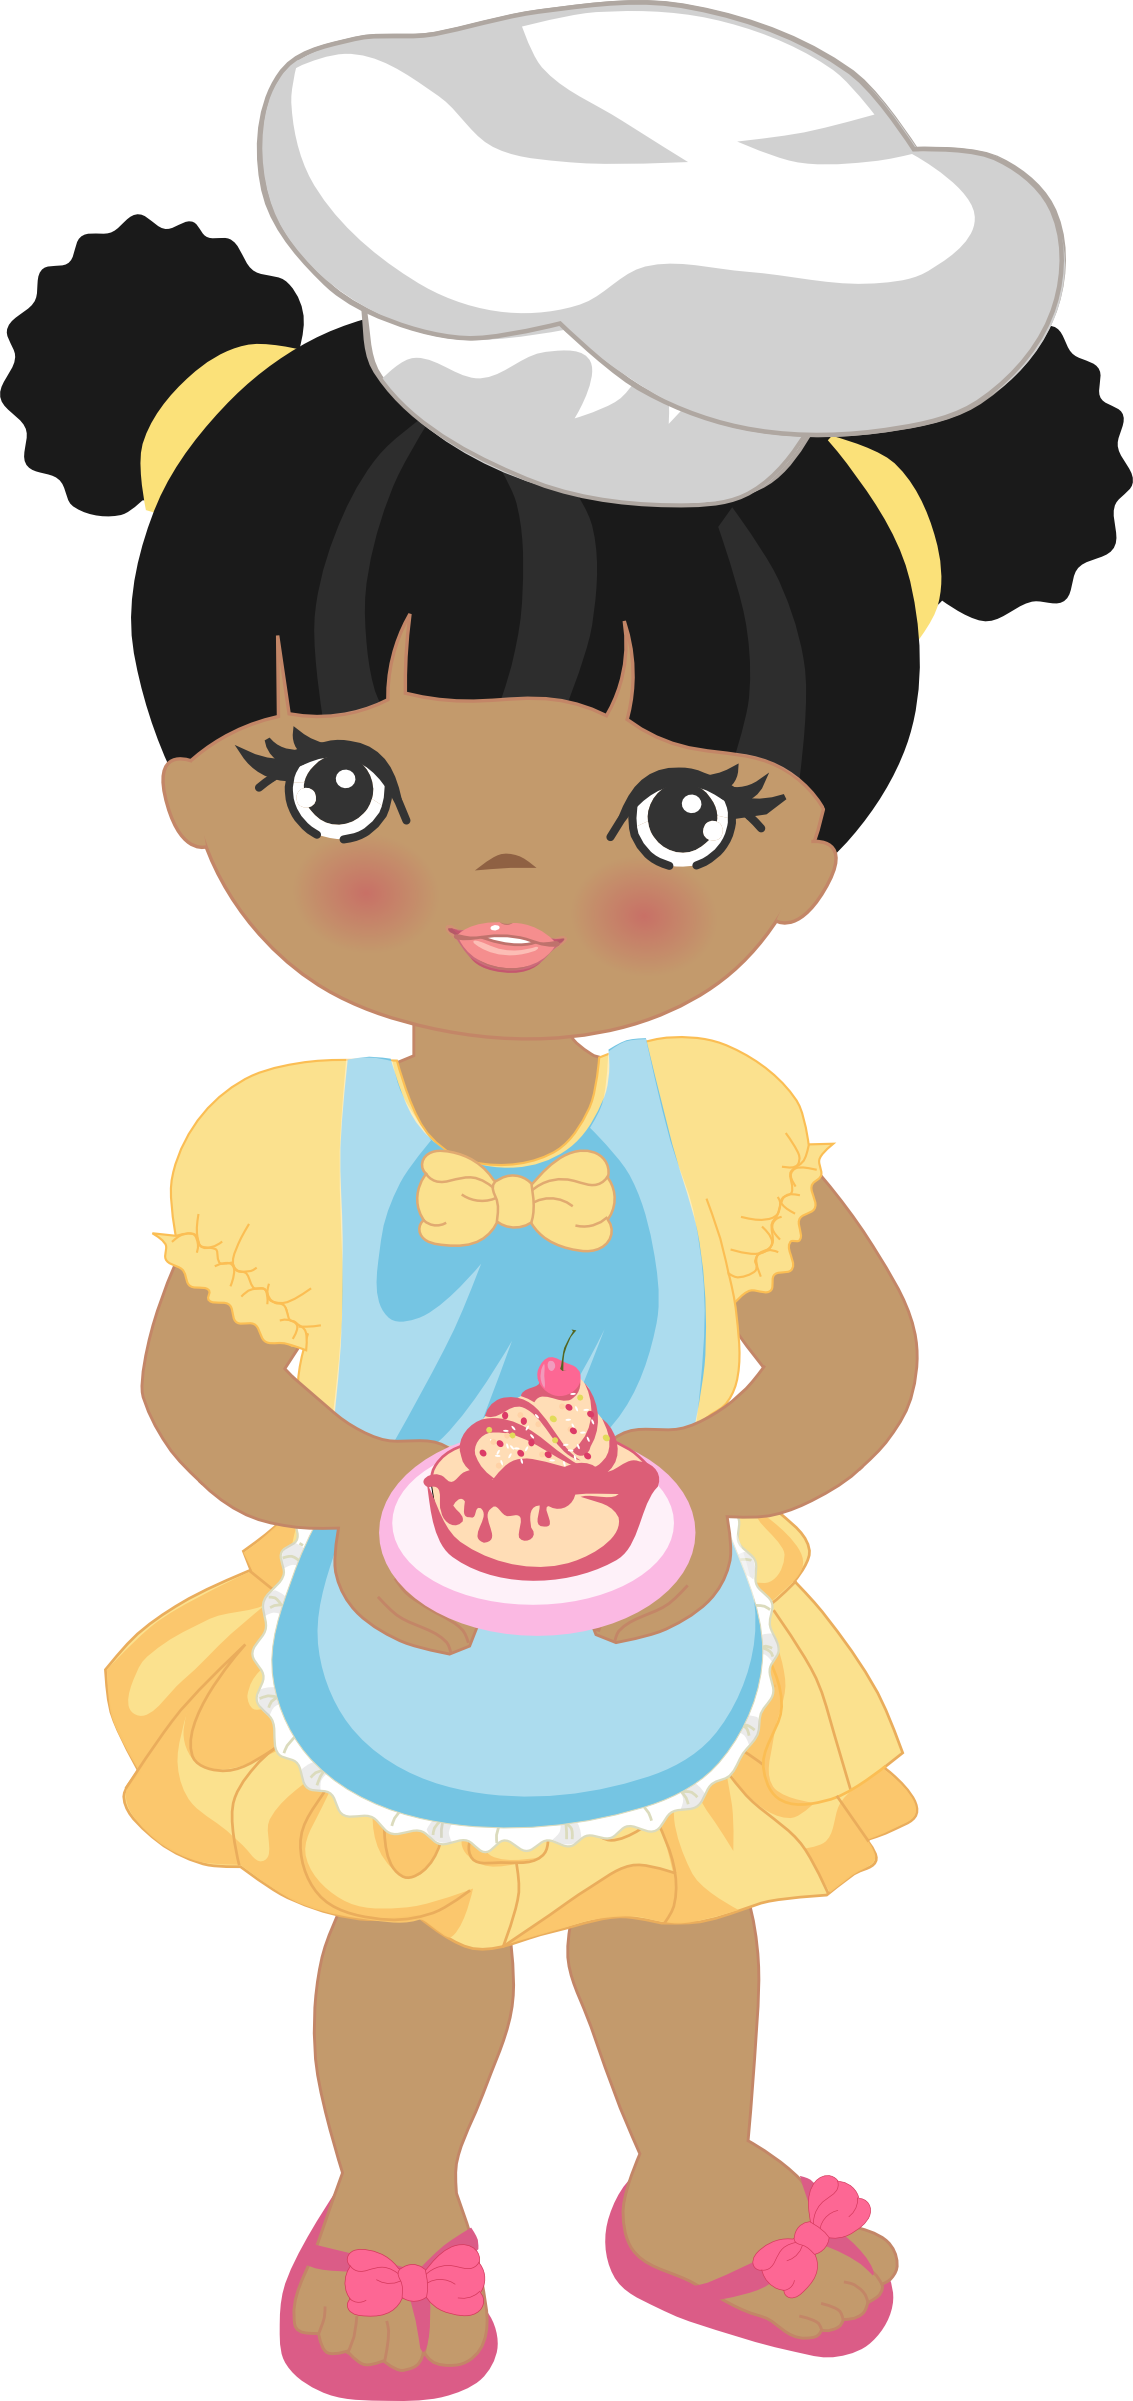 Inwucpheqzllt png dulces dibujos. Cook clipart pastry chef